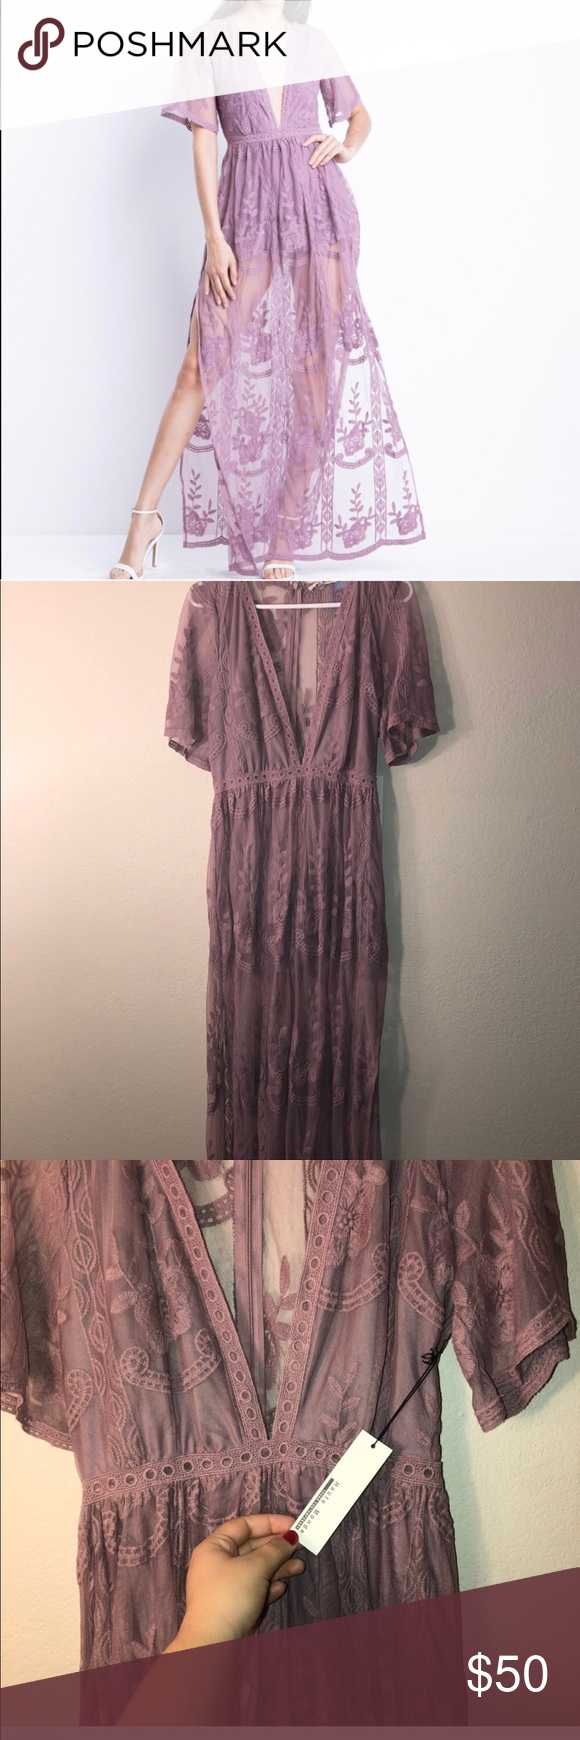 5800c8e0d696 Lilac lavender Lace embroidered romper maxi dress HAUTE MONDE SEND ME ANY  KINDS OF OFFERS